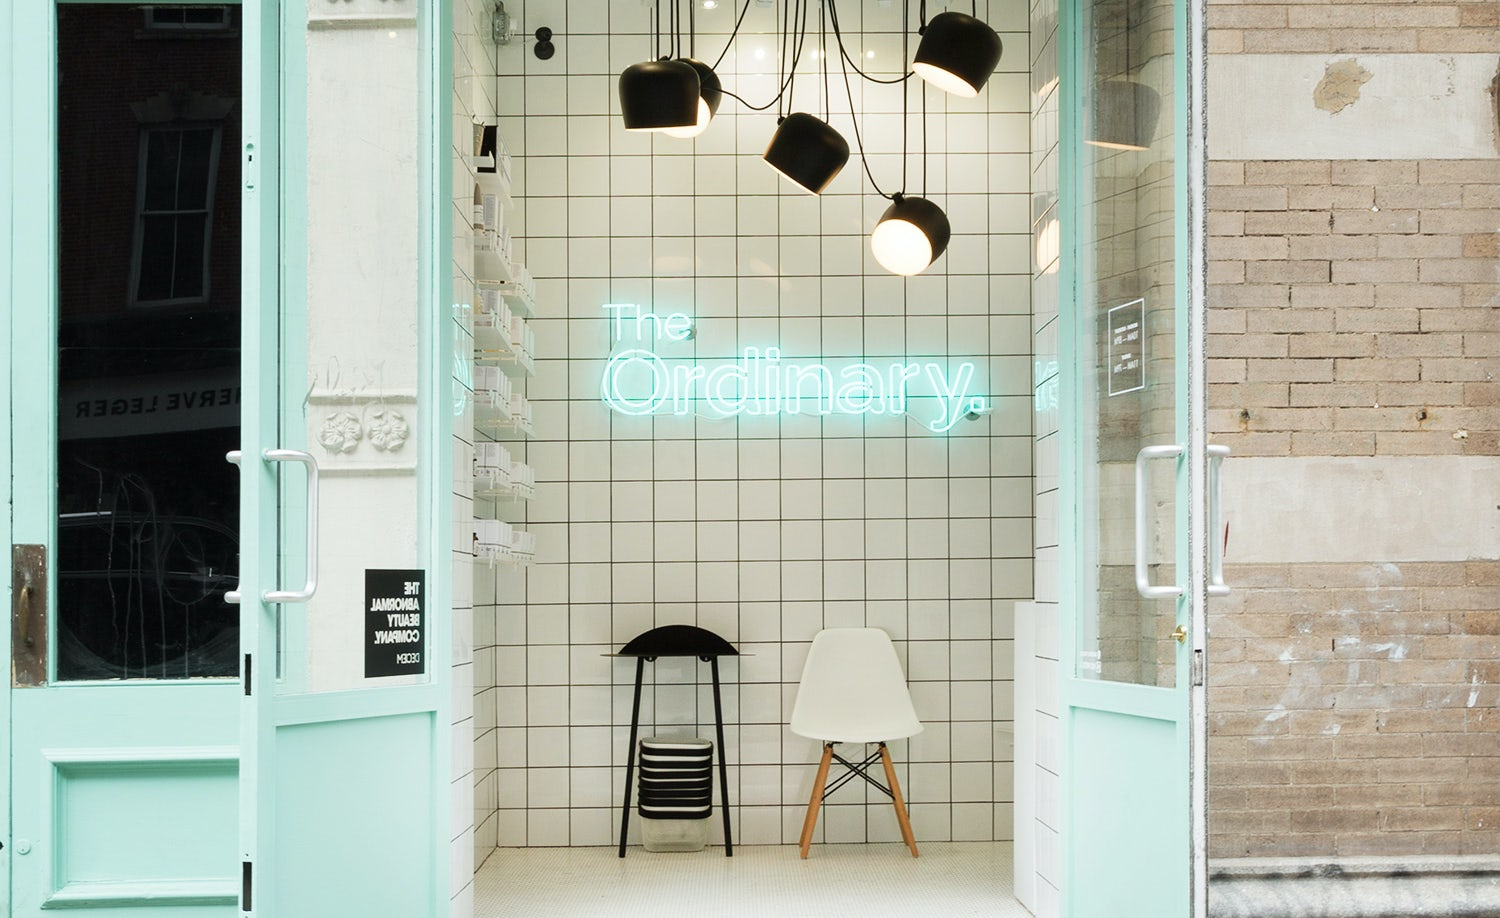 The Ordinary store | Source: Courtesy